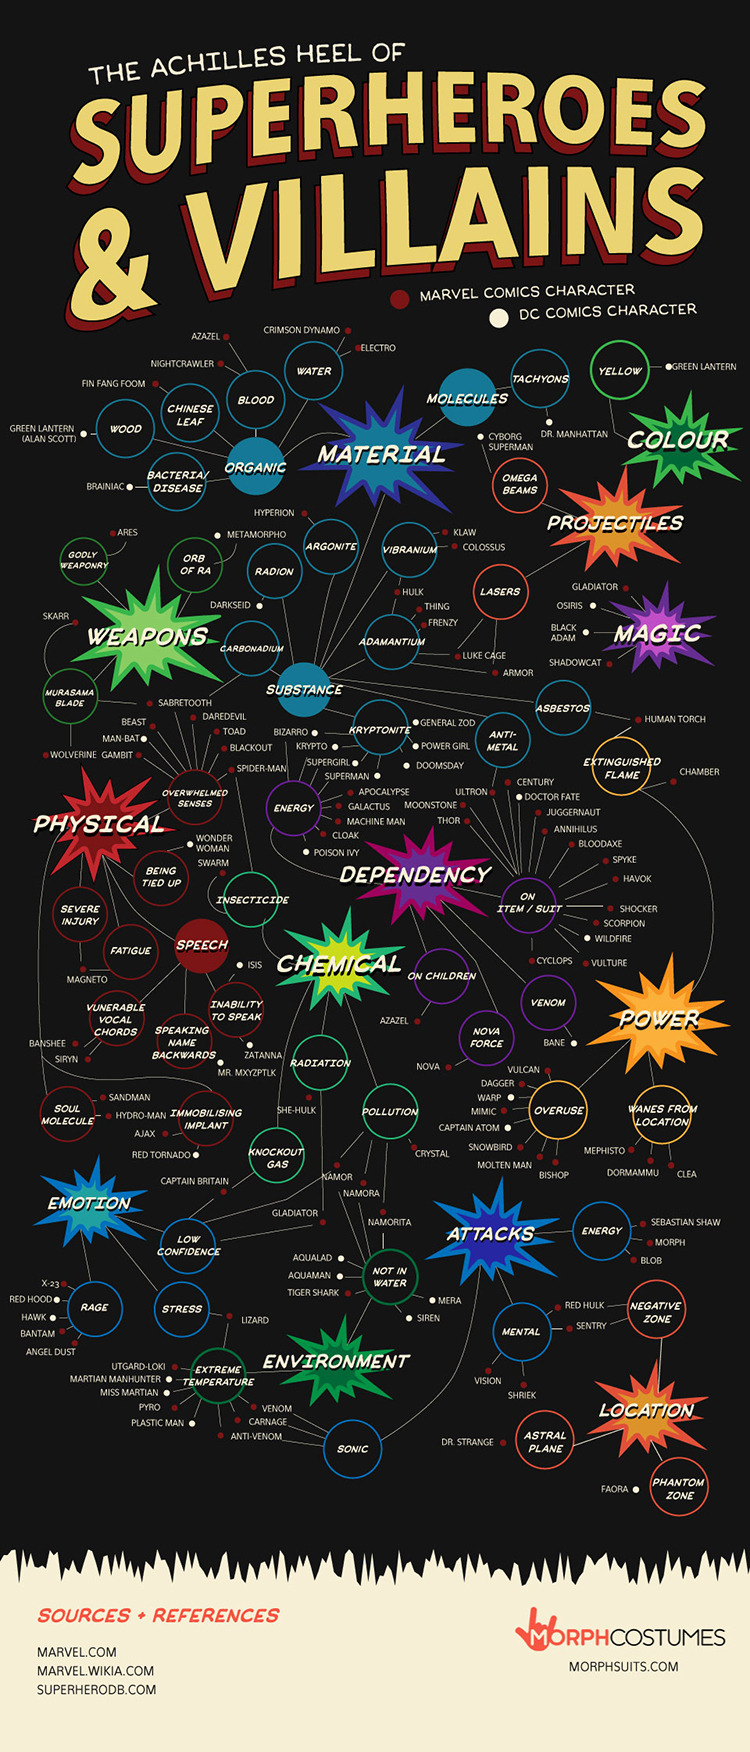 The Achilles Heels of Superheroes and Villains